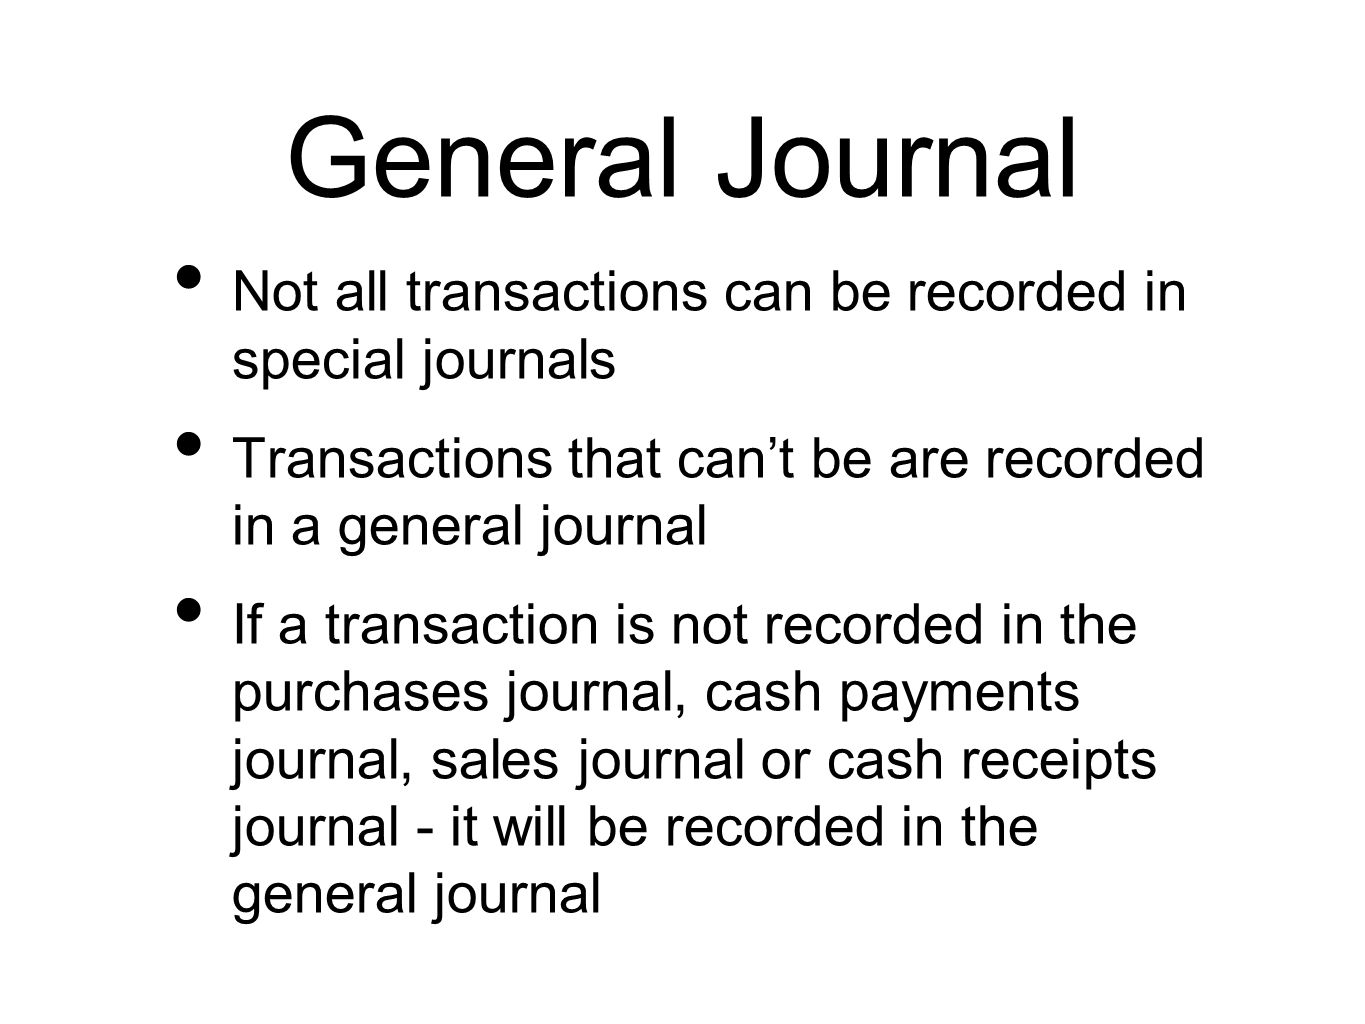 General Journal Not all transactions can be recorded in special journals. Transactions that can't be are recorded in a general journal.